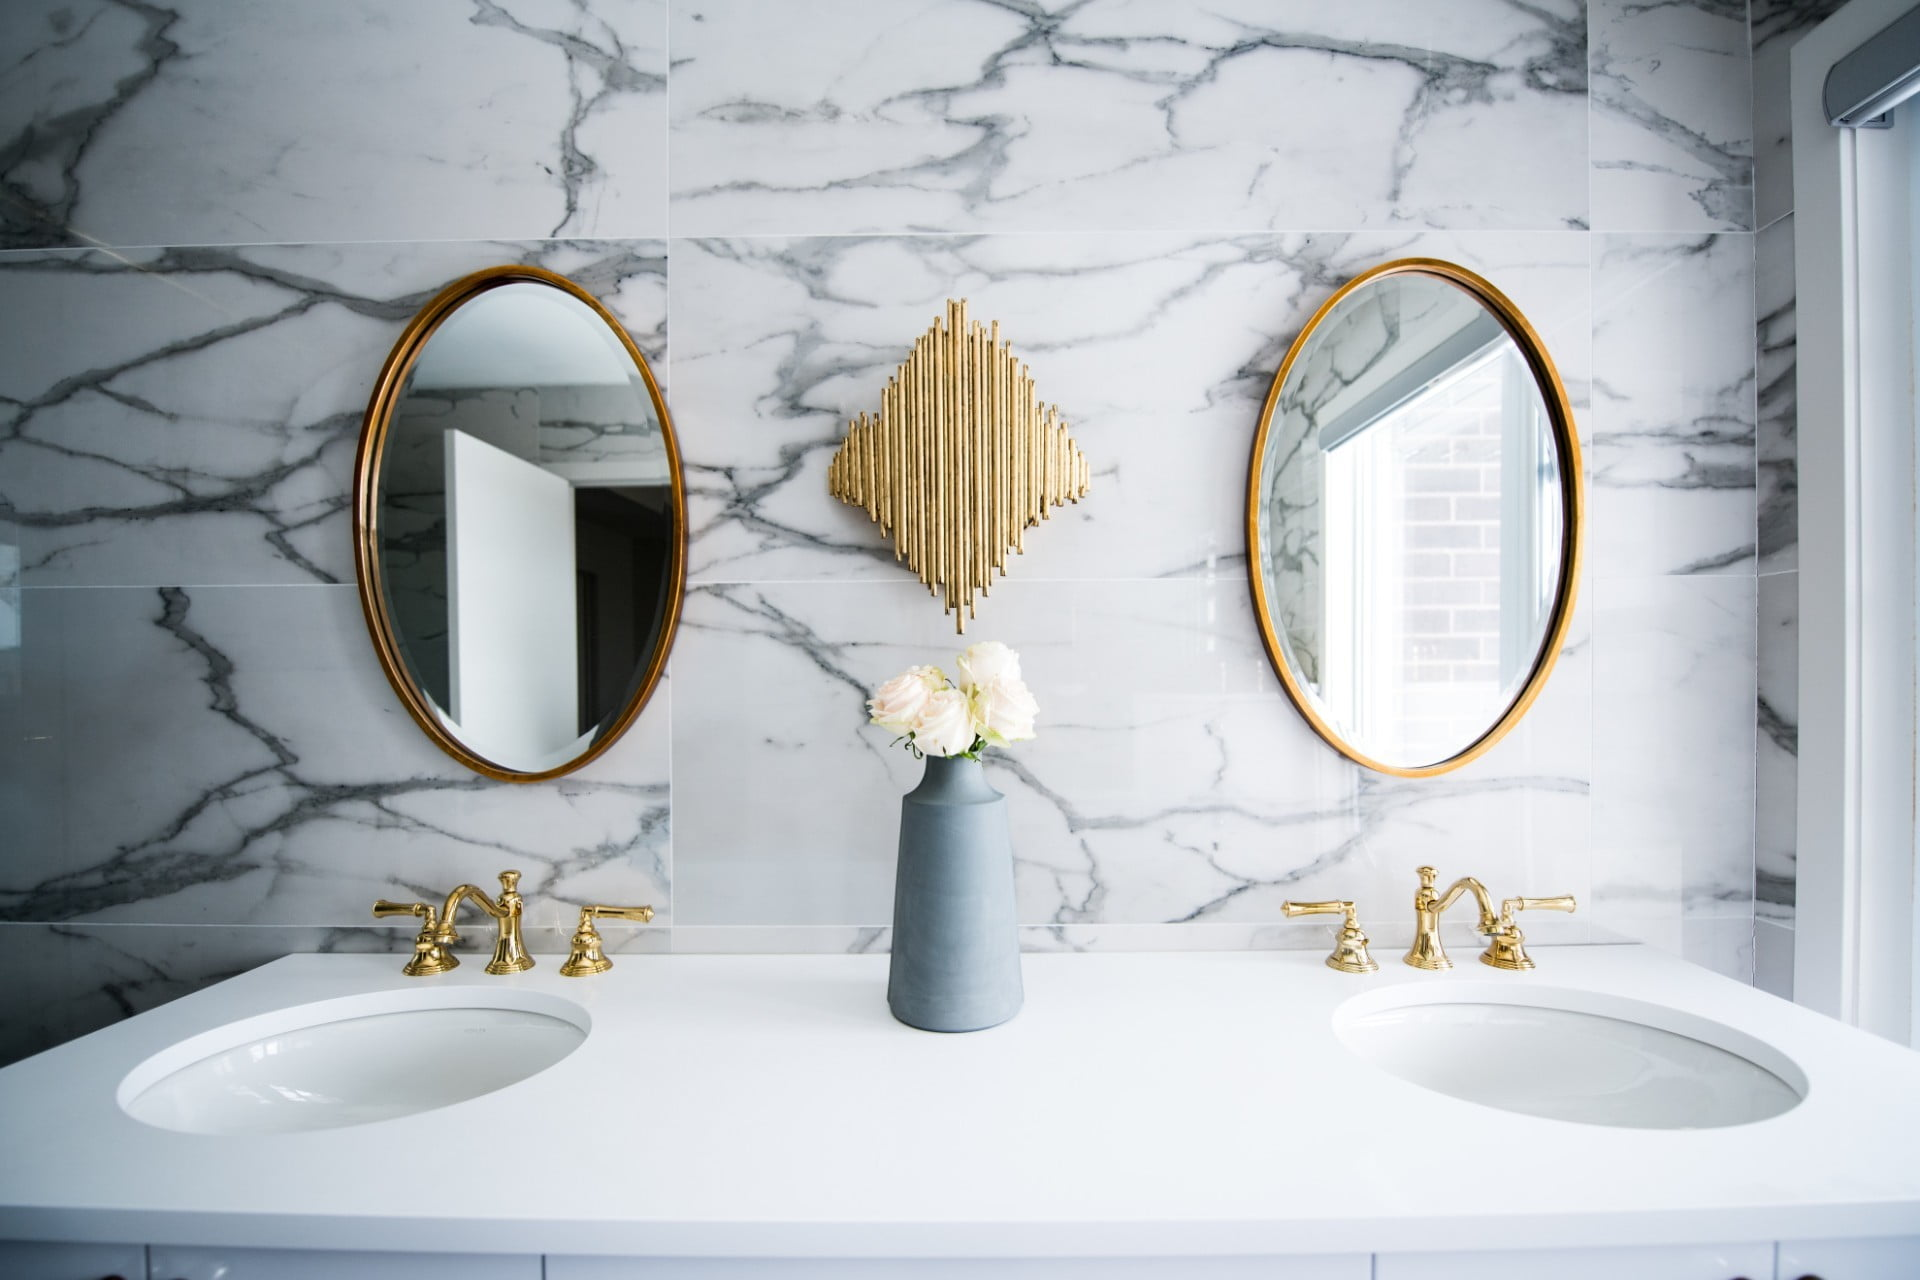 Can Shaving Cream Get Rid Of Gross Smells In Your Bathroom 21oak